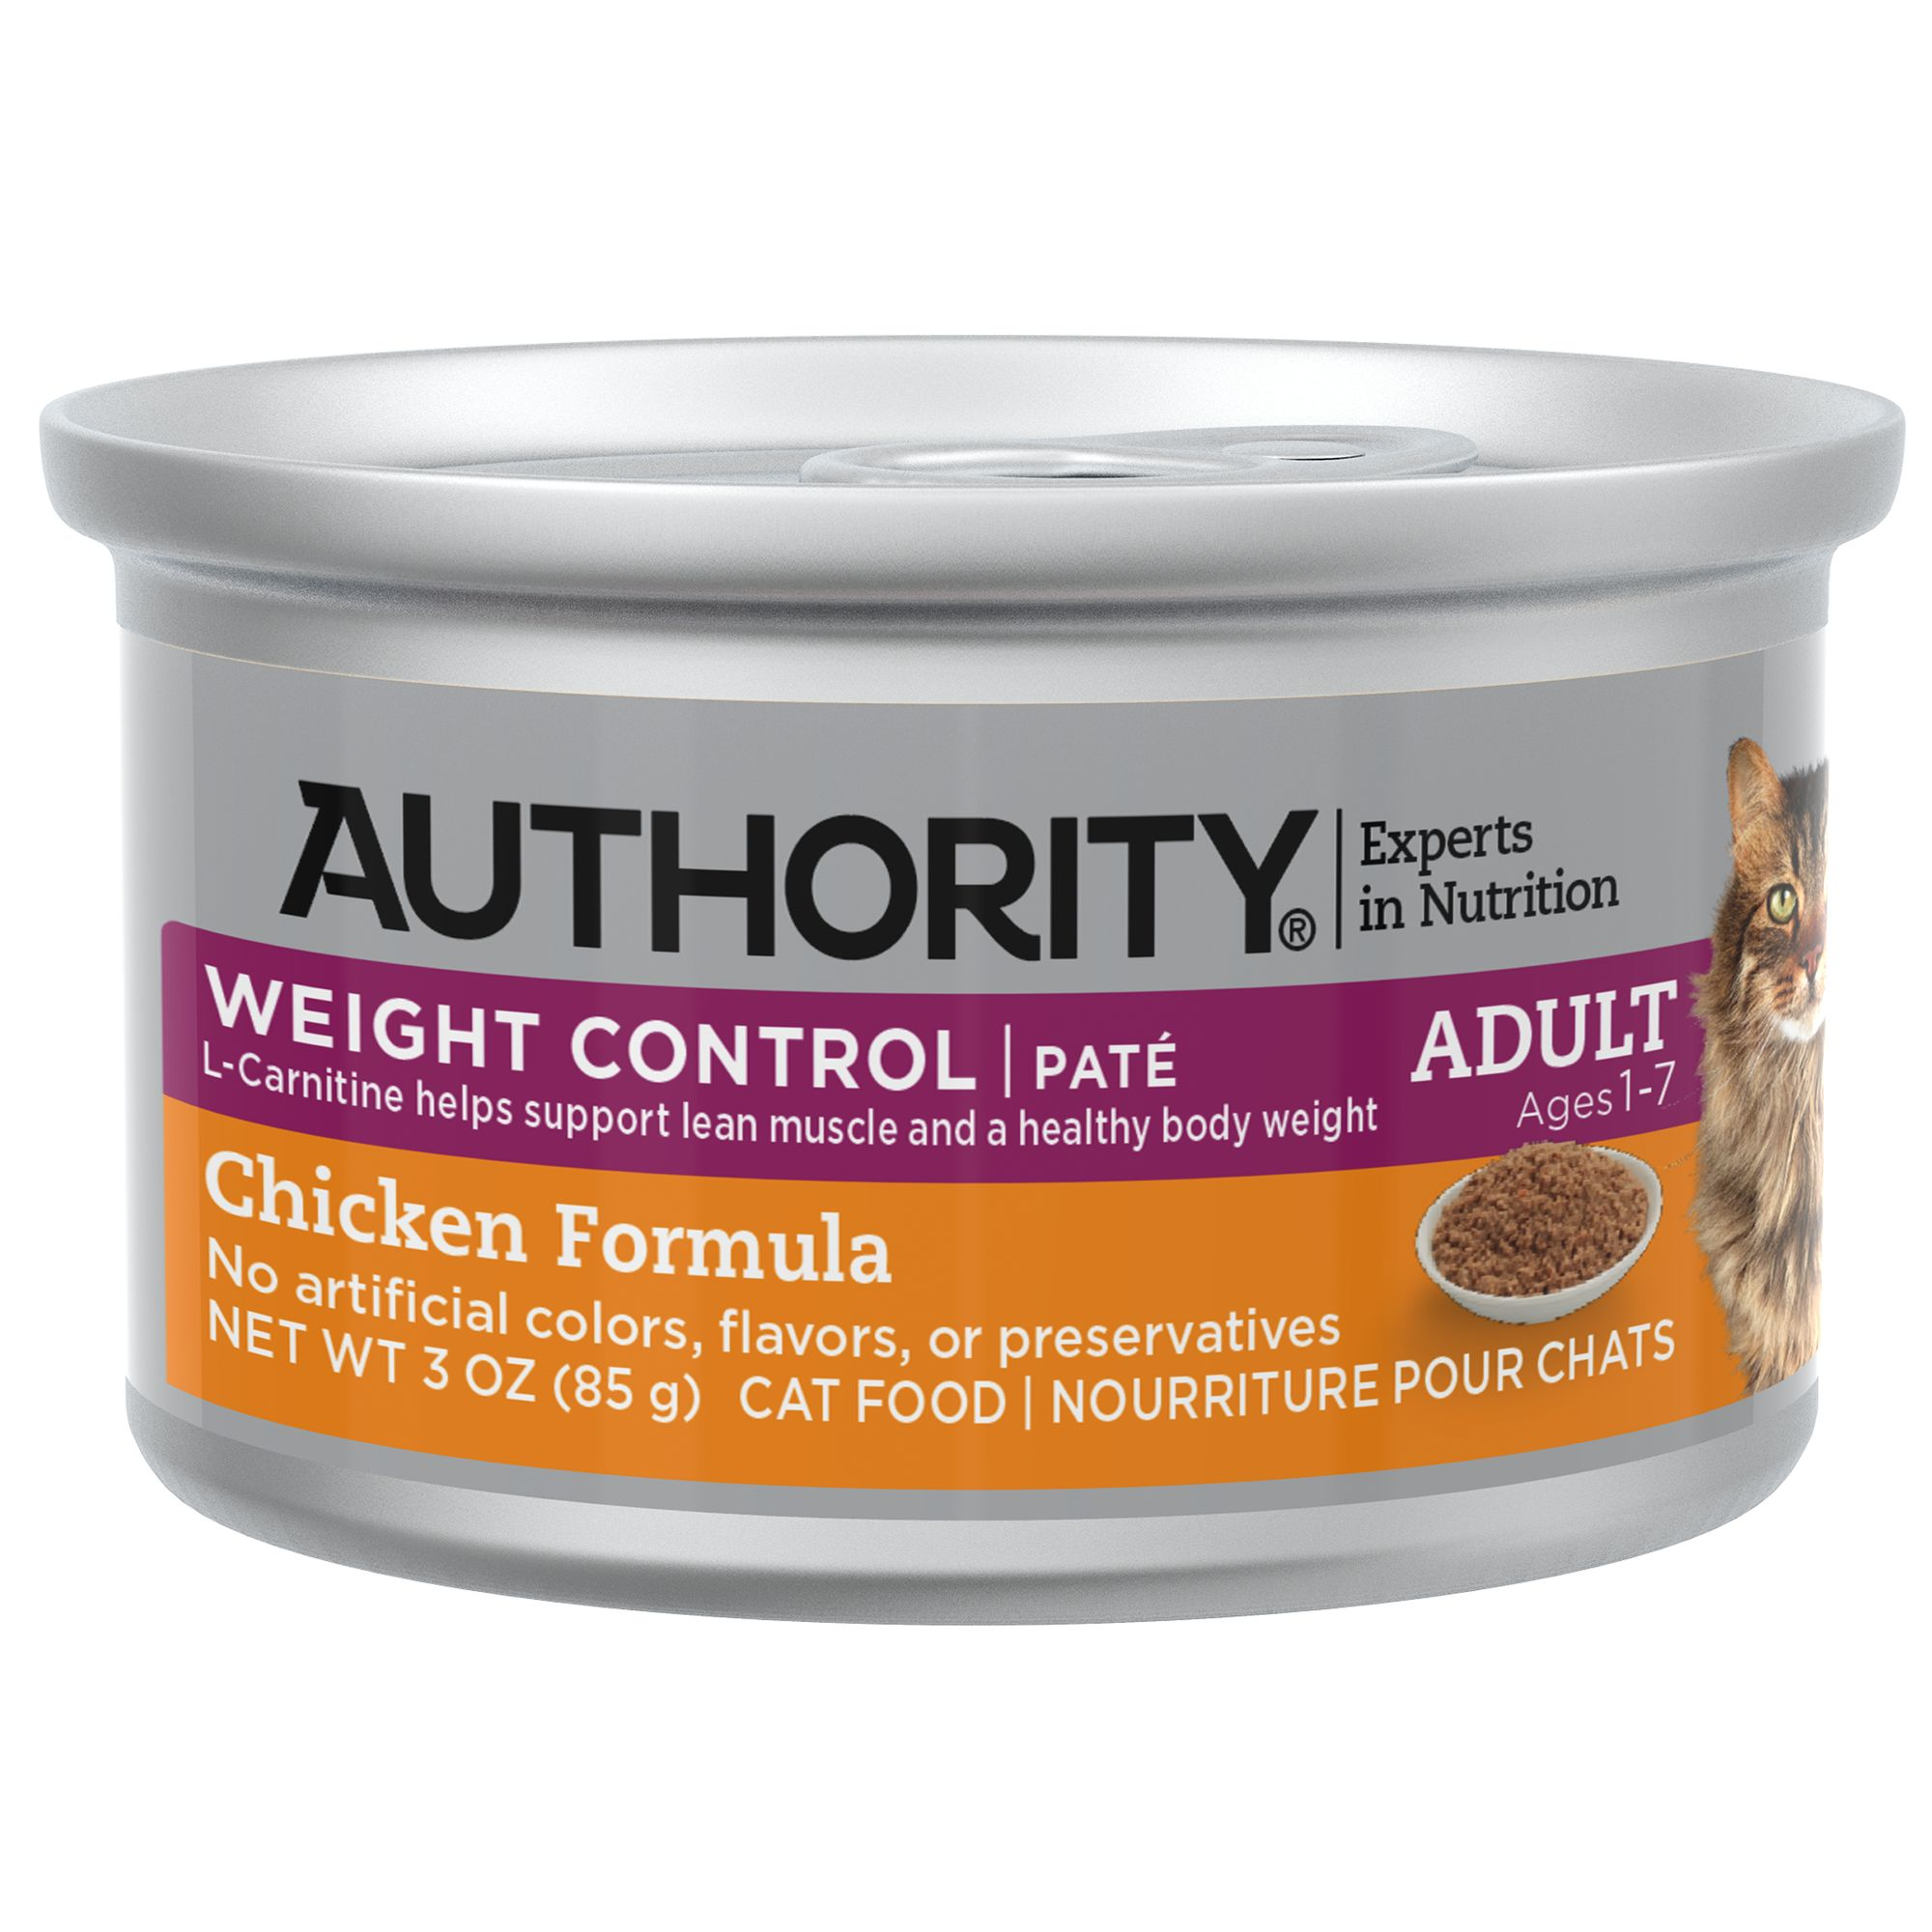 Authority Weight Control Pate